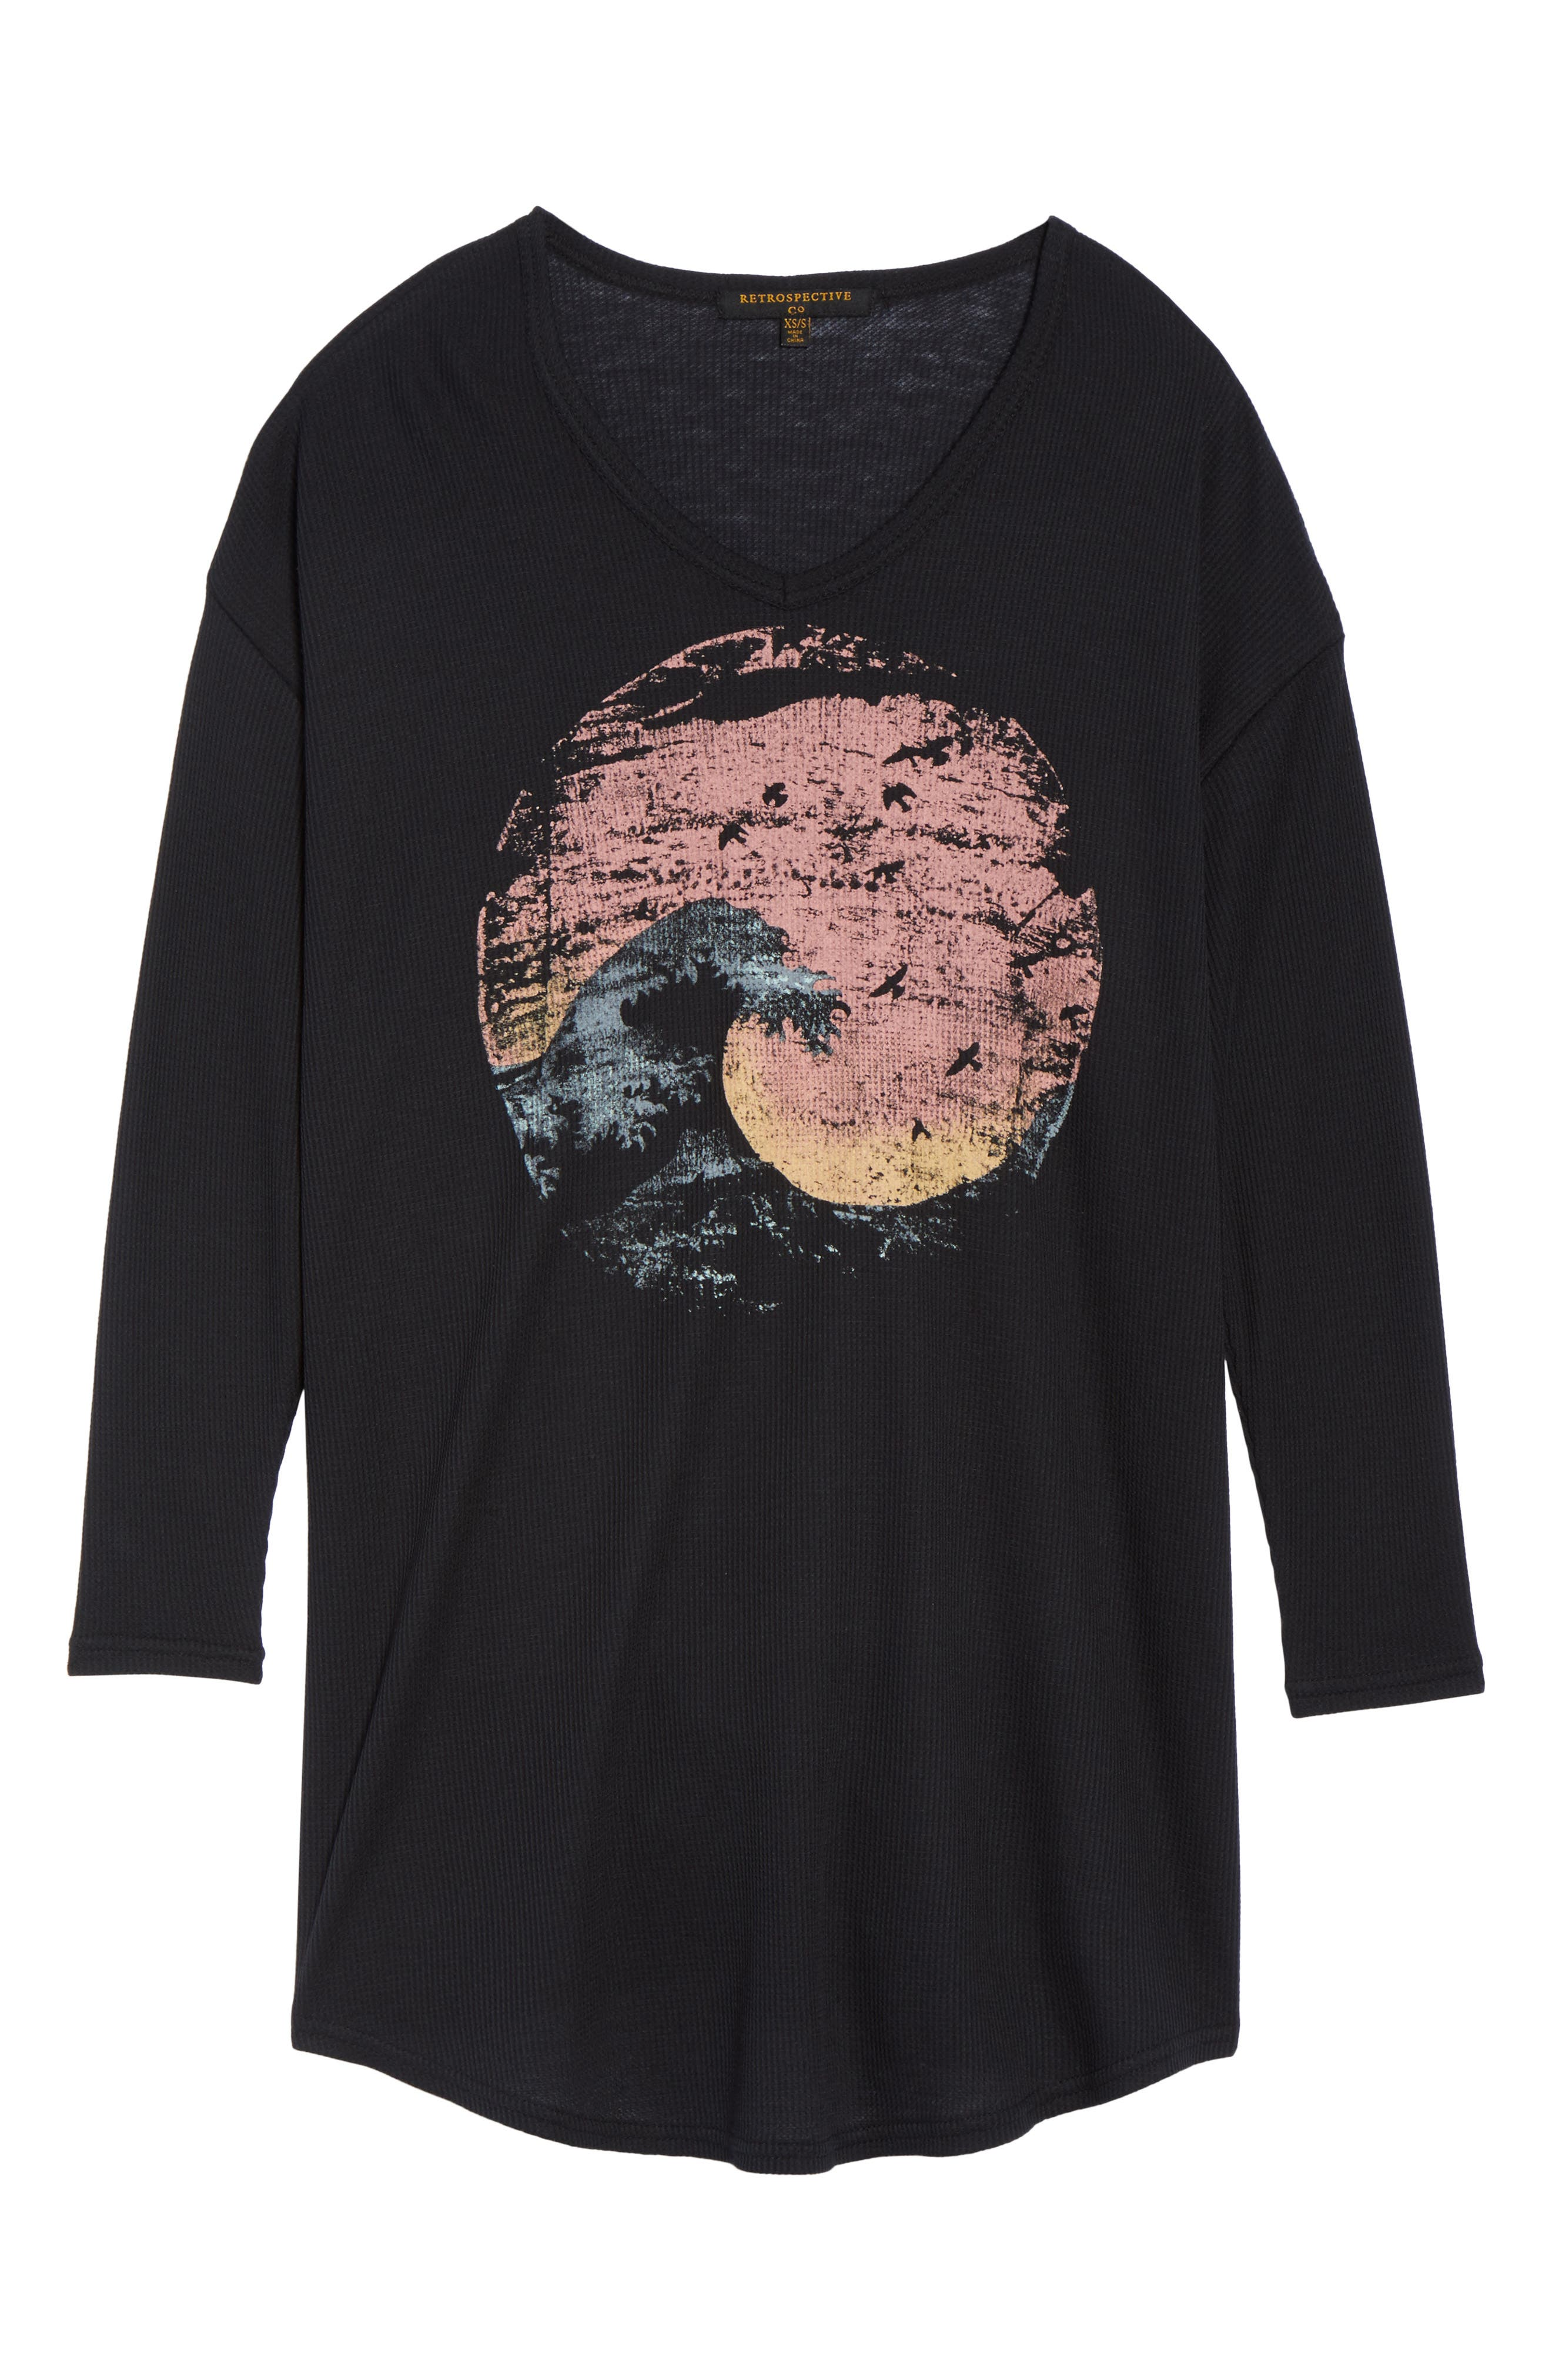 Thermal Nightshirt,                             Alternate thumbnail 4, color,                             Black Wave Sunset